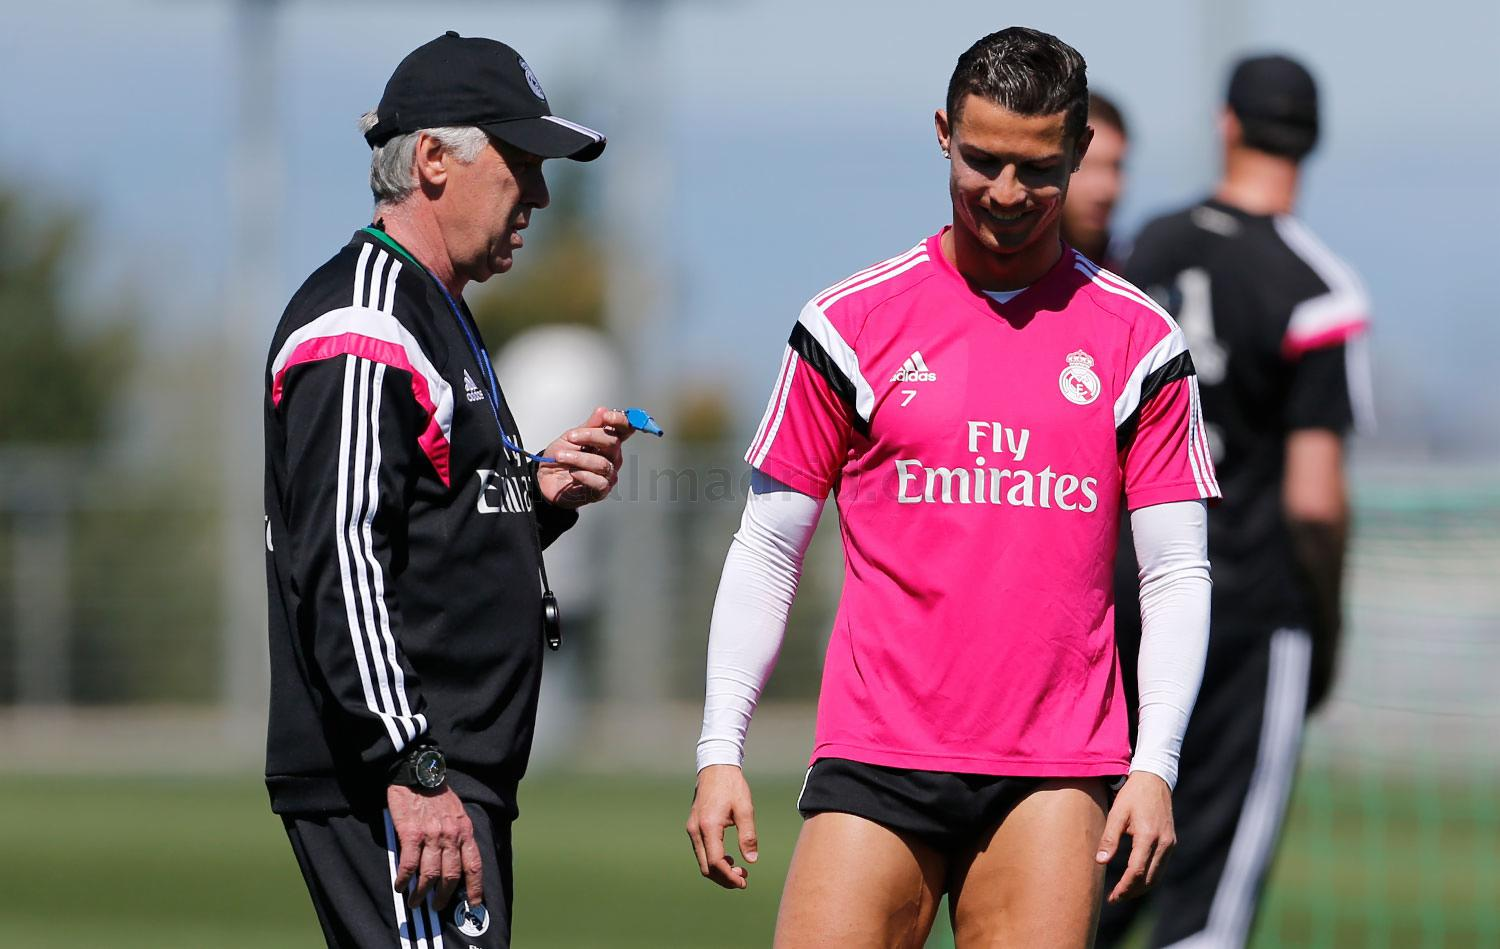 Real Madrid - Entrenamiento del Real Madrid - 01-04-2015